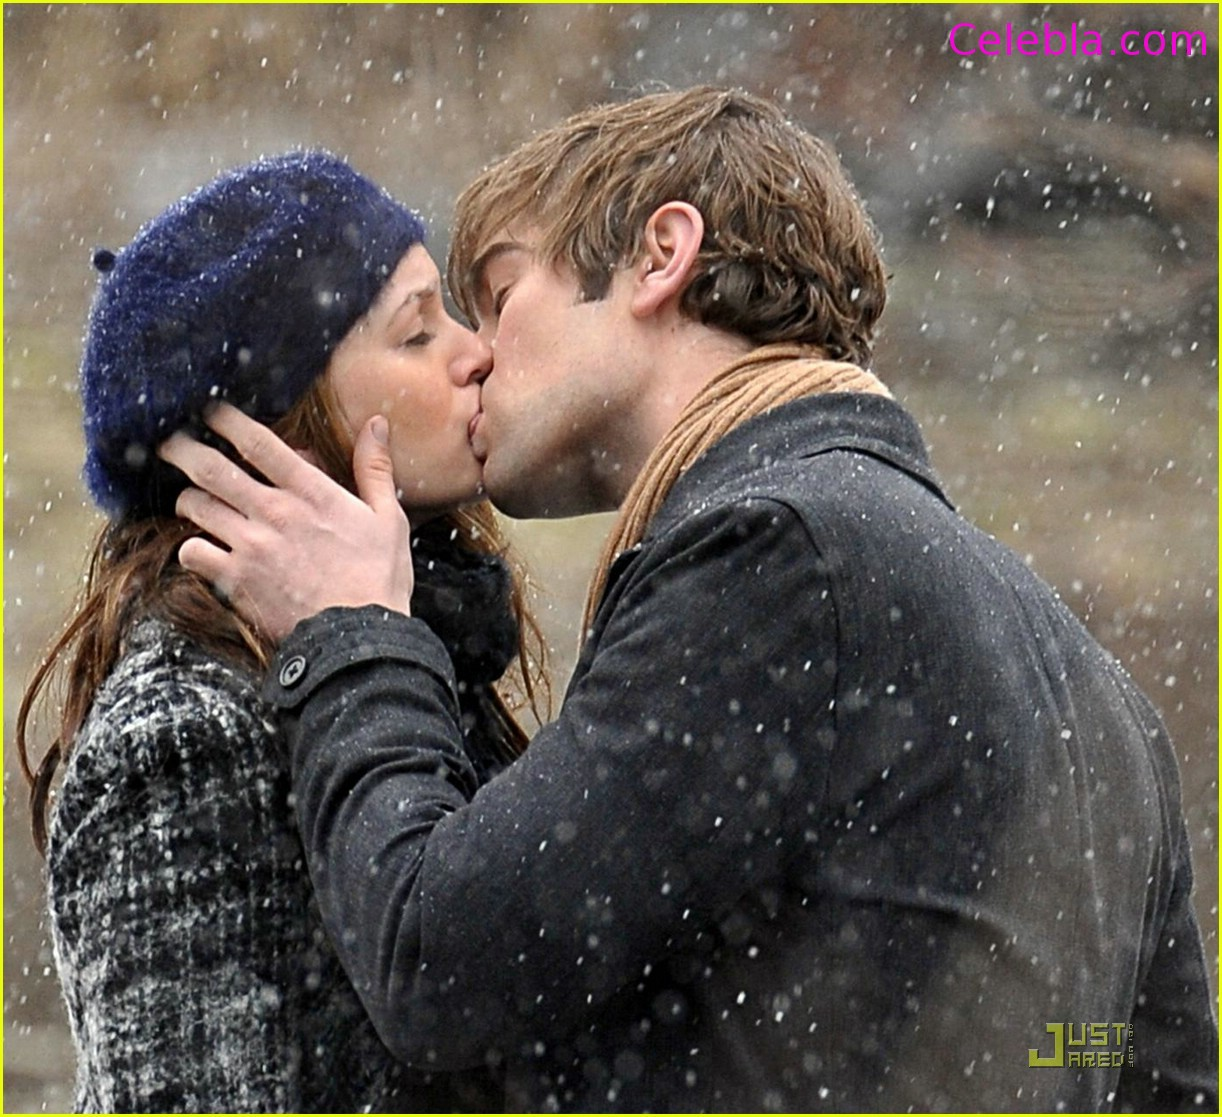 Chace Crawford Kissing Leighton Meester Wallpaper